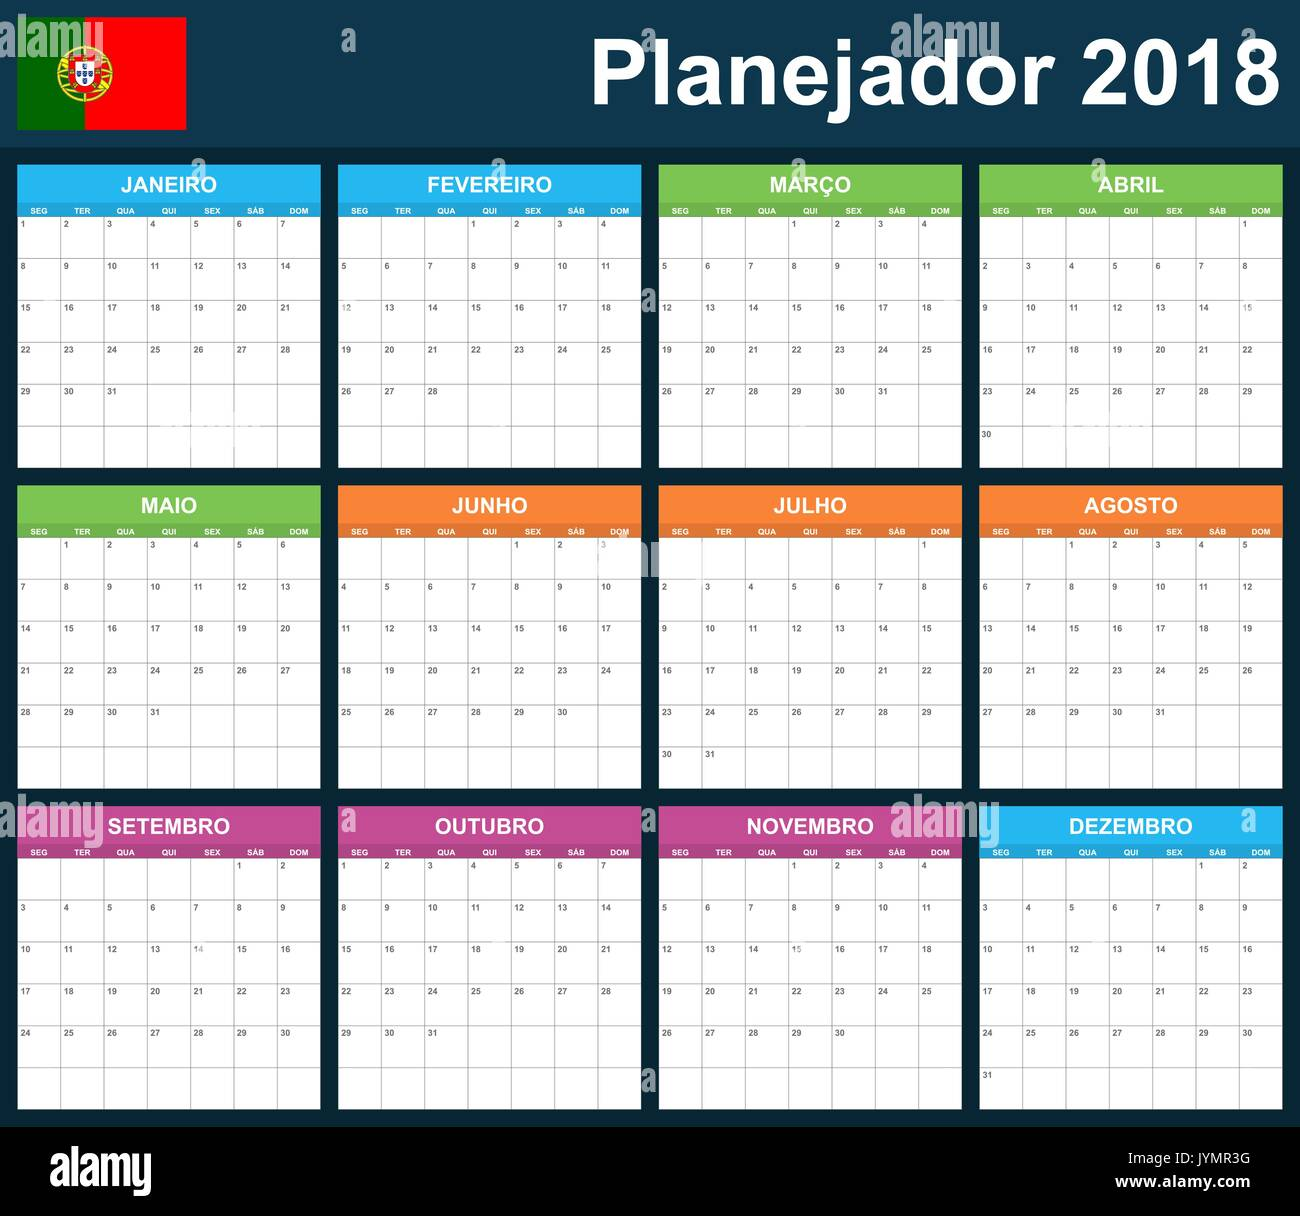 portuguese planner blank for 2018 scheduler agenda or diary stock